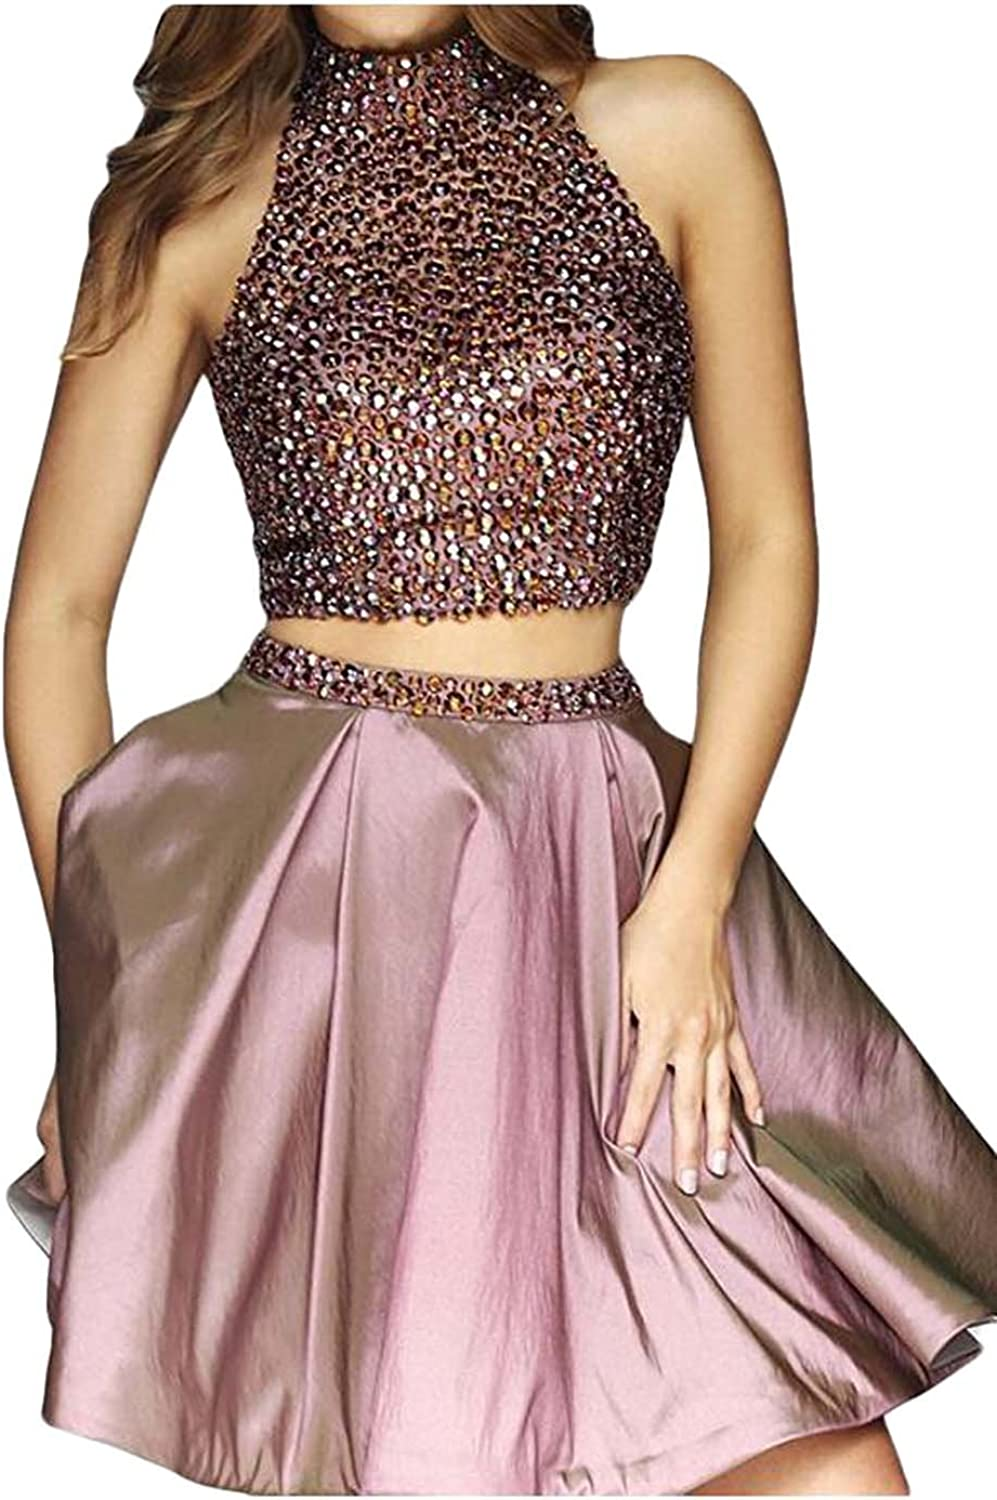 Scarisee Women's High Neck Beaded Homecoming Dress Short Two Pieces Prom GownSA9